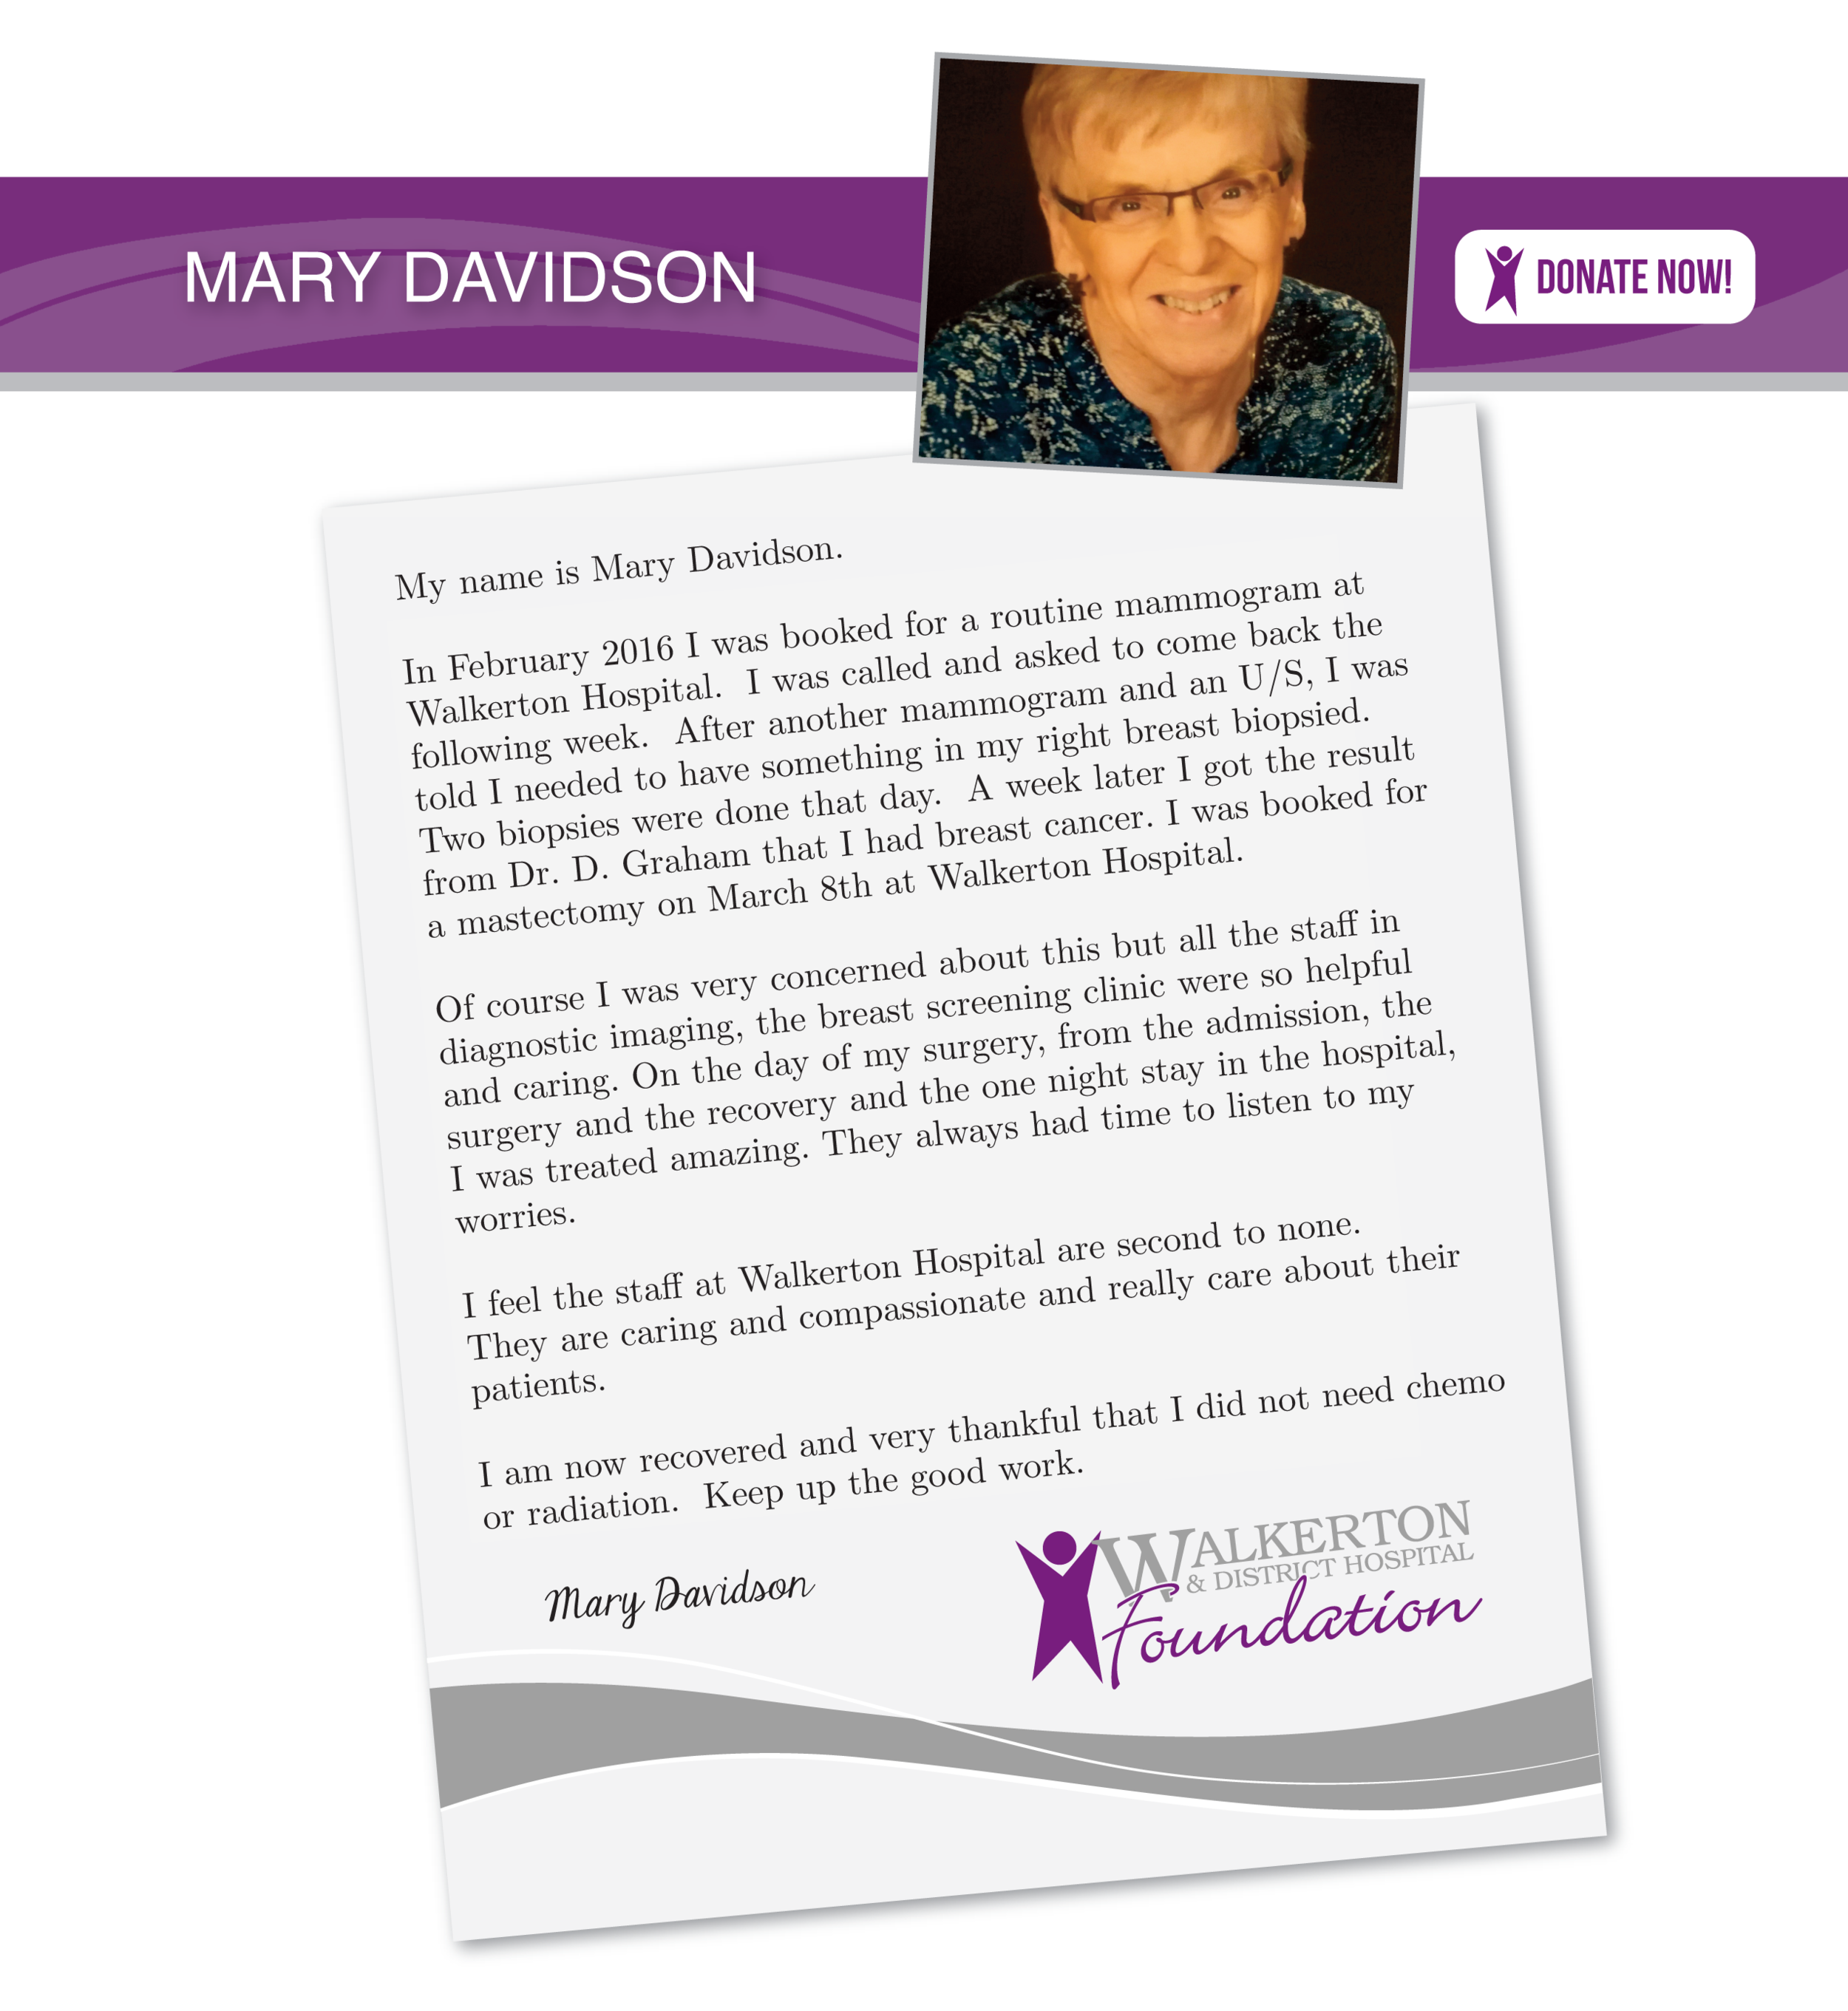 WDHF_STORY OF THE HEART_MARY DAVIDSON.png